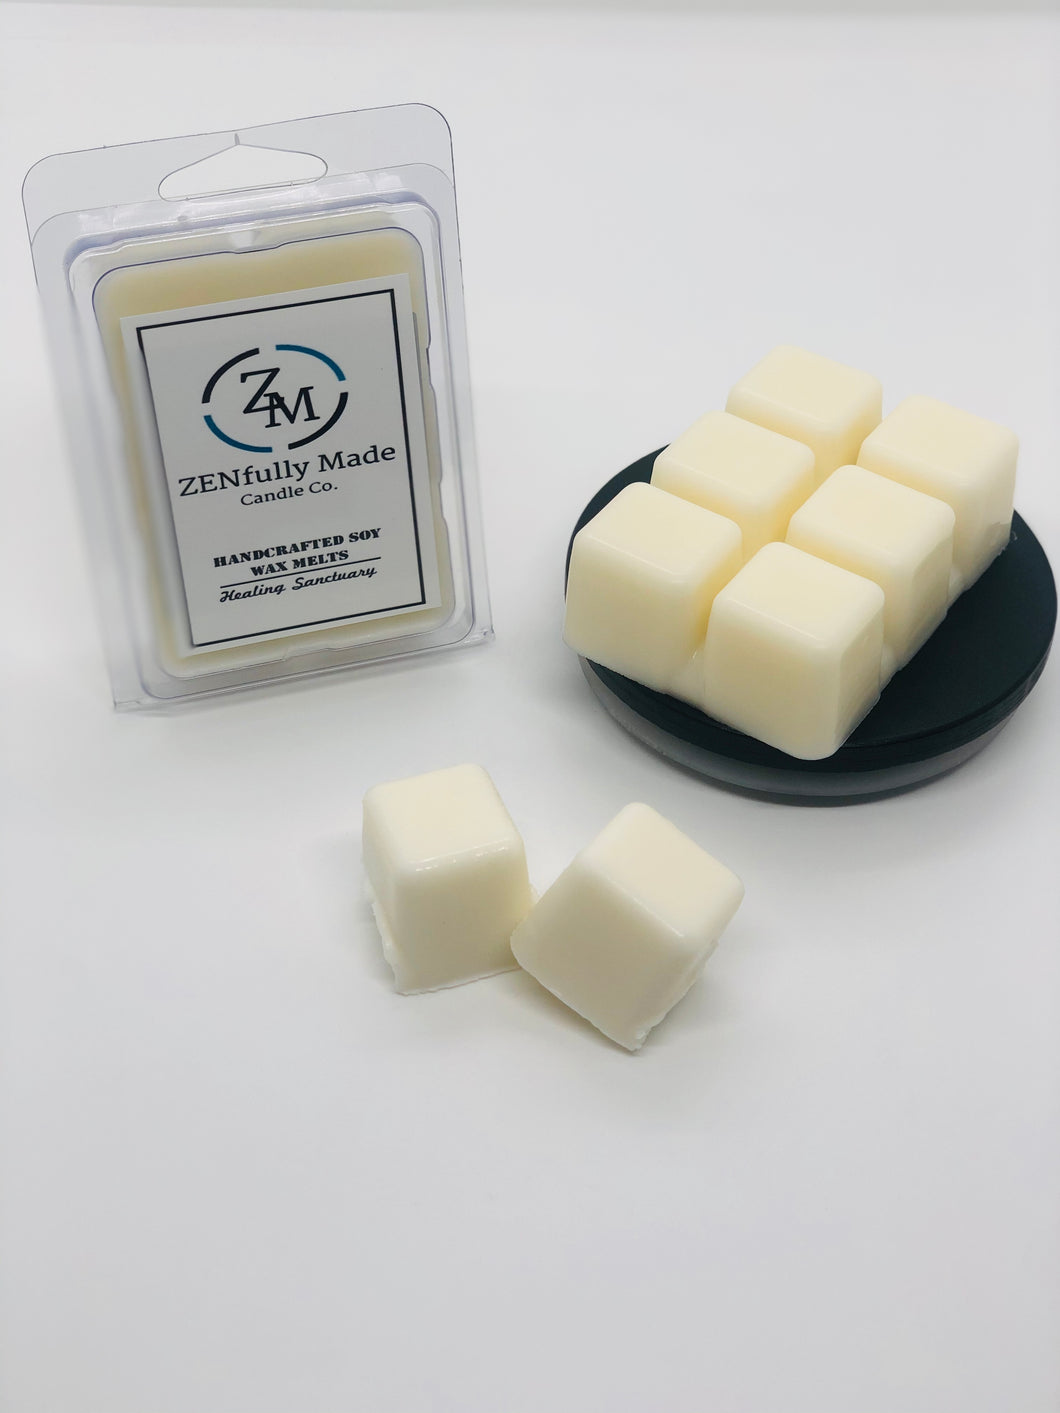 Healing Sanctuary Wax Melts - ZENfully Made Candle Co.